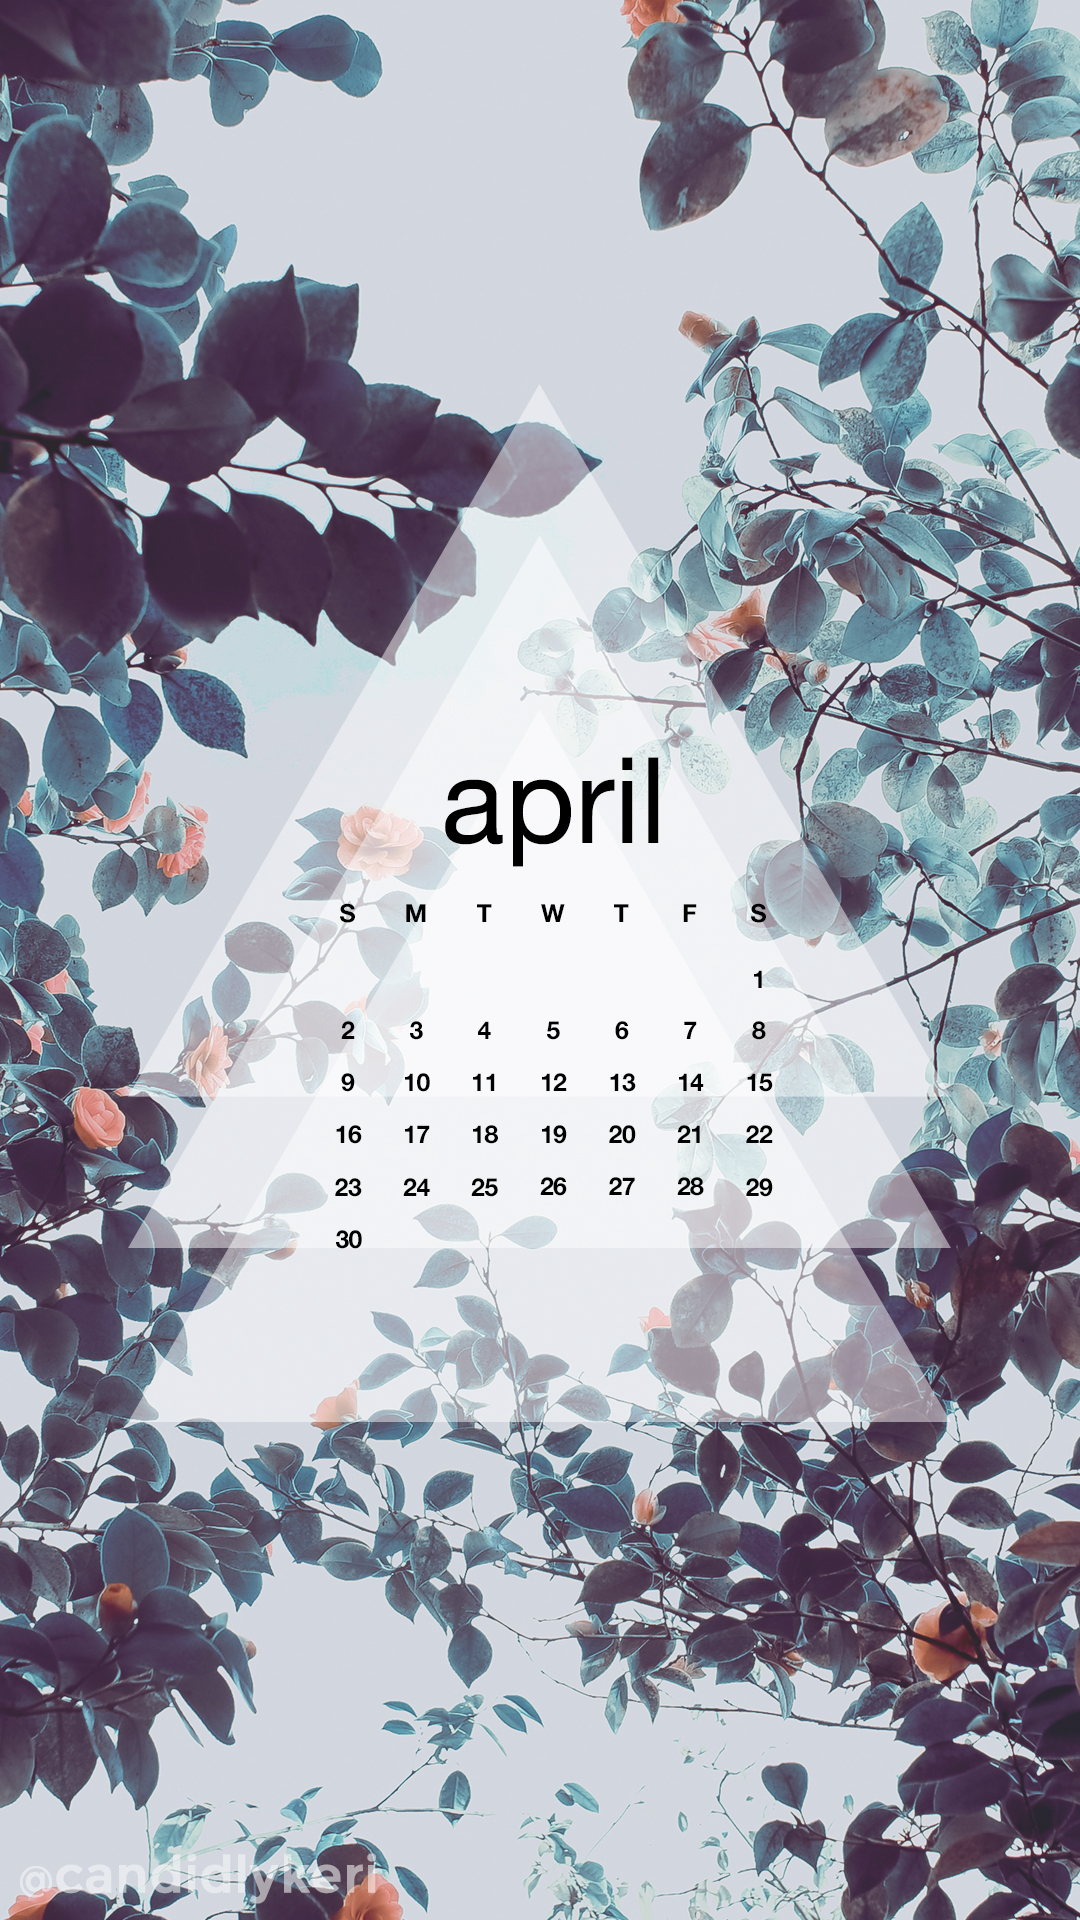 April-calendar-you-can-download-for-free-on-the-blog-For-any-device-mobile-desktop-wallpaper-wp3402558